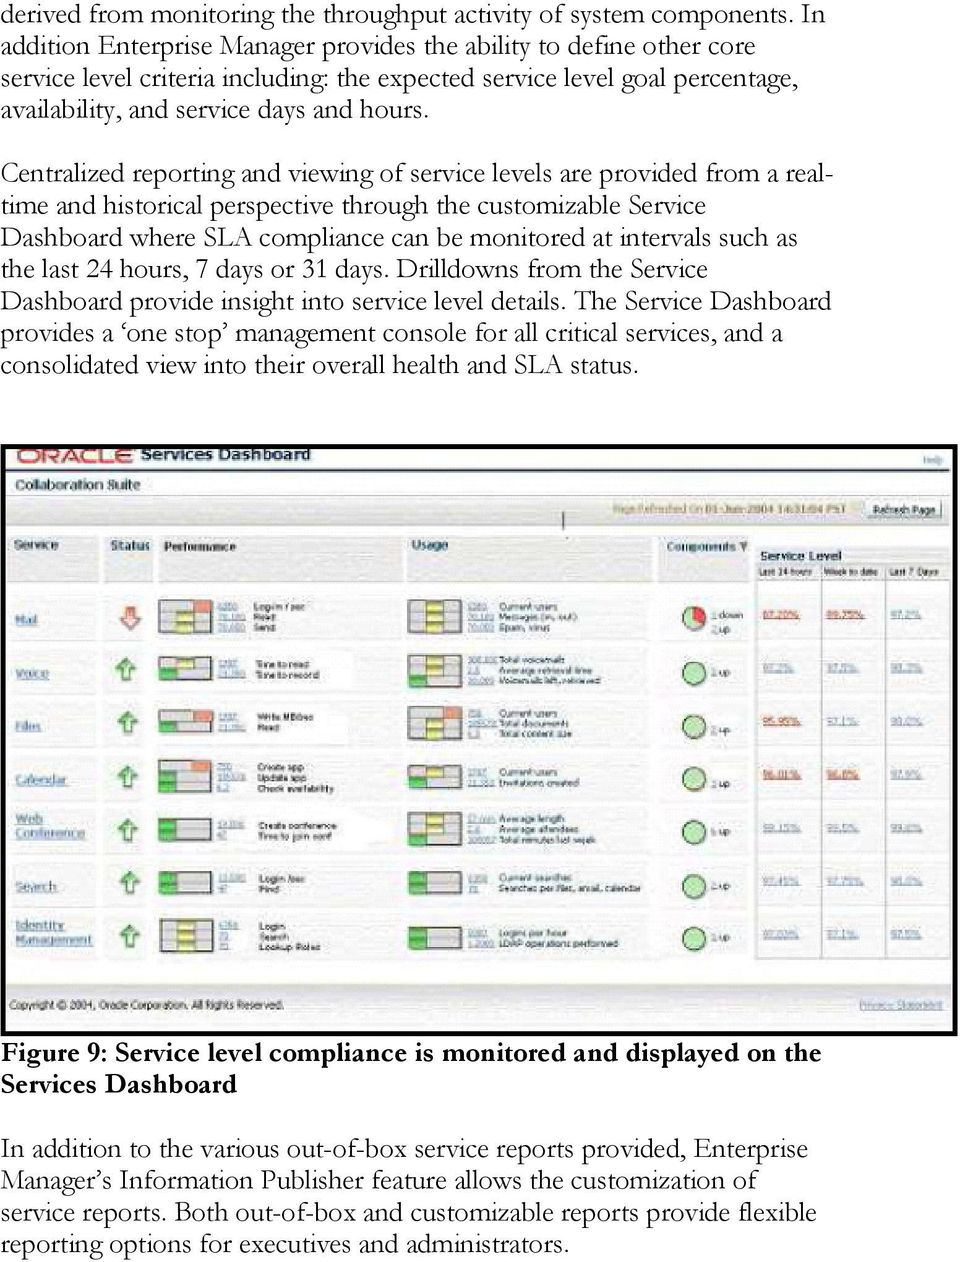 Centralized reporting and viewing of service levels are provided from a realtime and historical perspective through the customizable Service Dashboard where SLA compliance can be monitored at